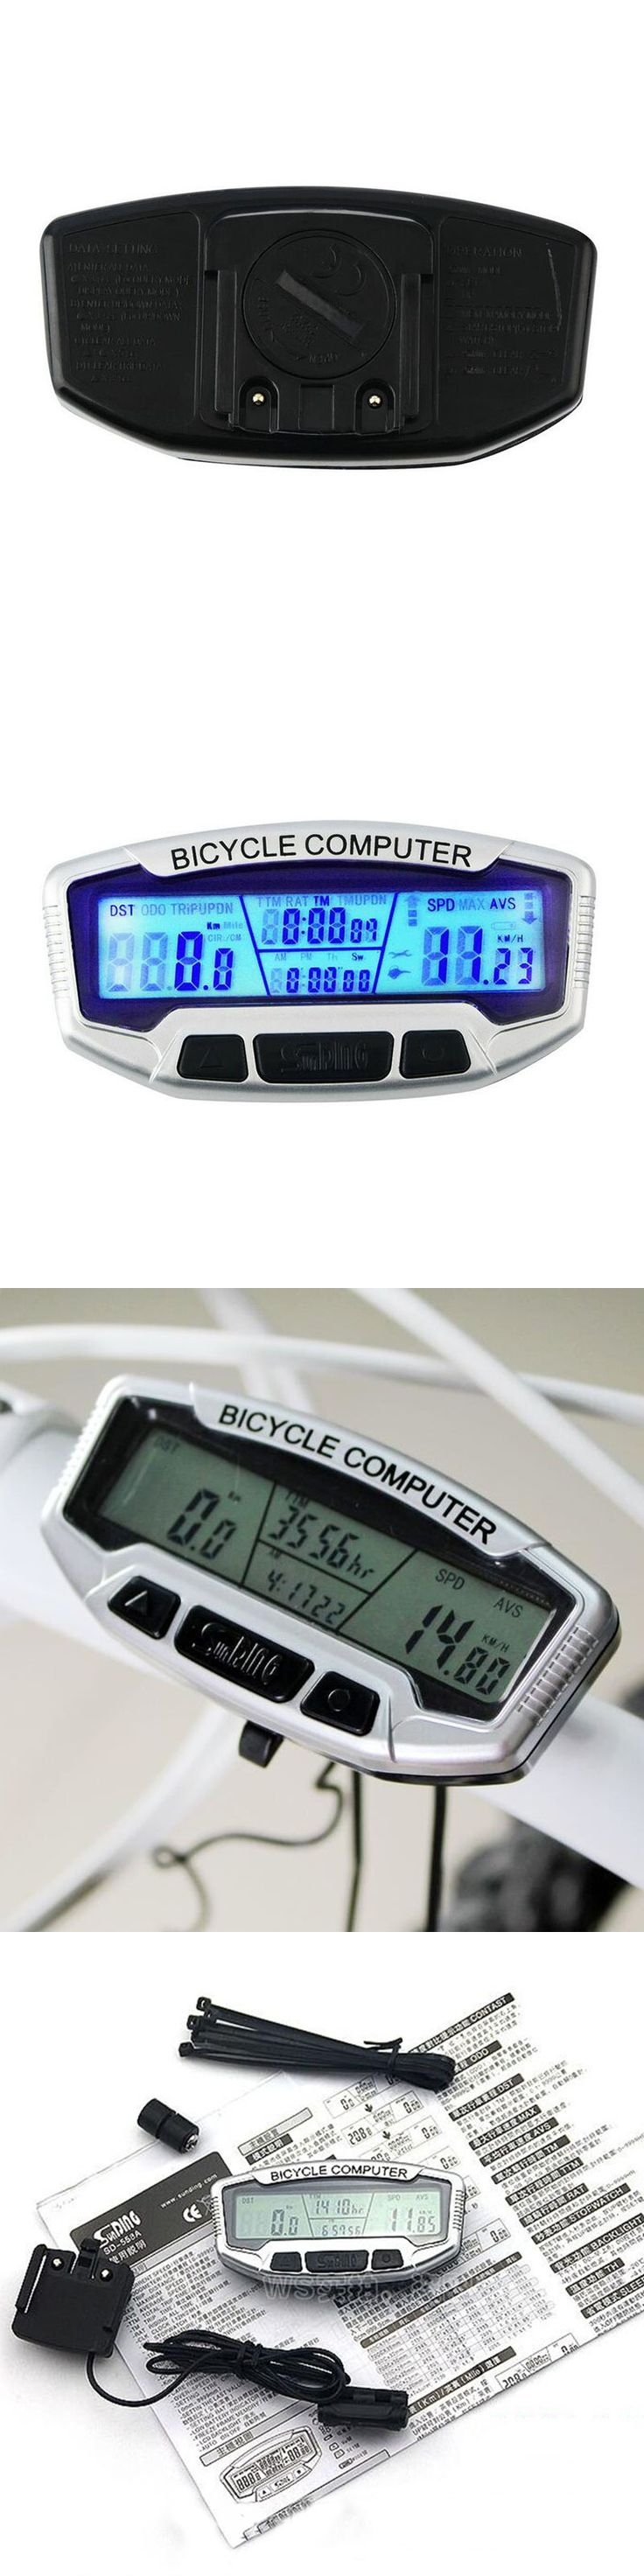 Digital LCD Display Bicycle Computer Bike Odometer Speedometer Blue Backlight Thermometer Clock + Stopwatch Cycling Accessories